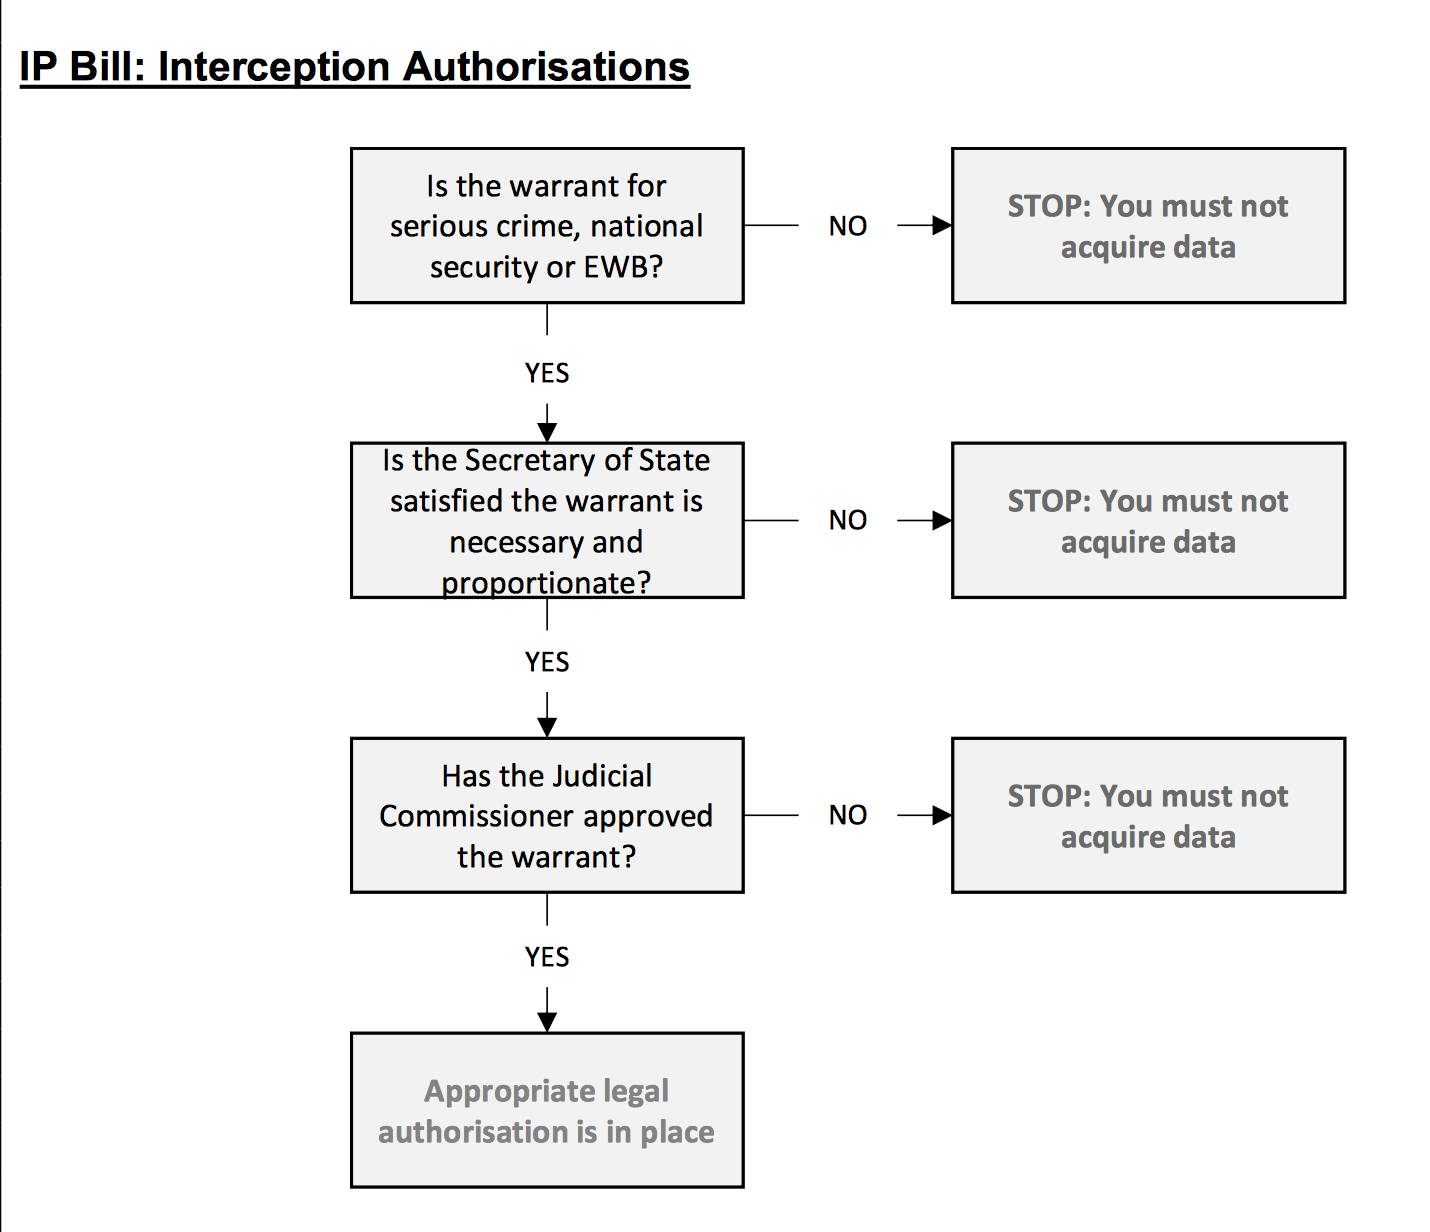 IP Bill Interception authorisations